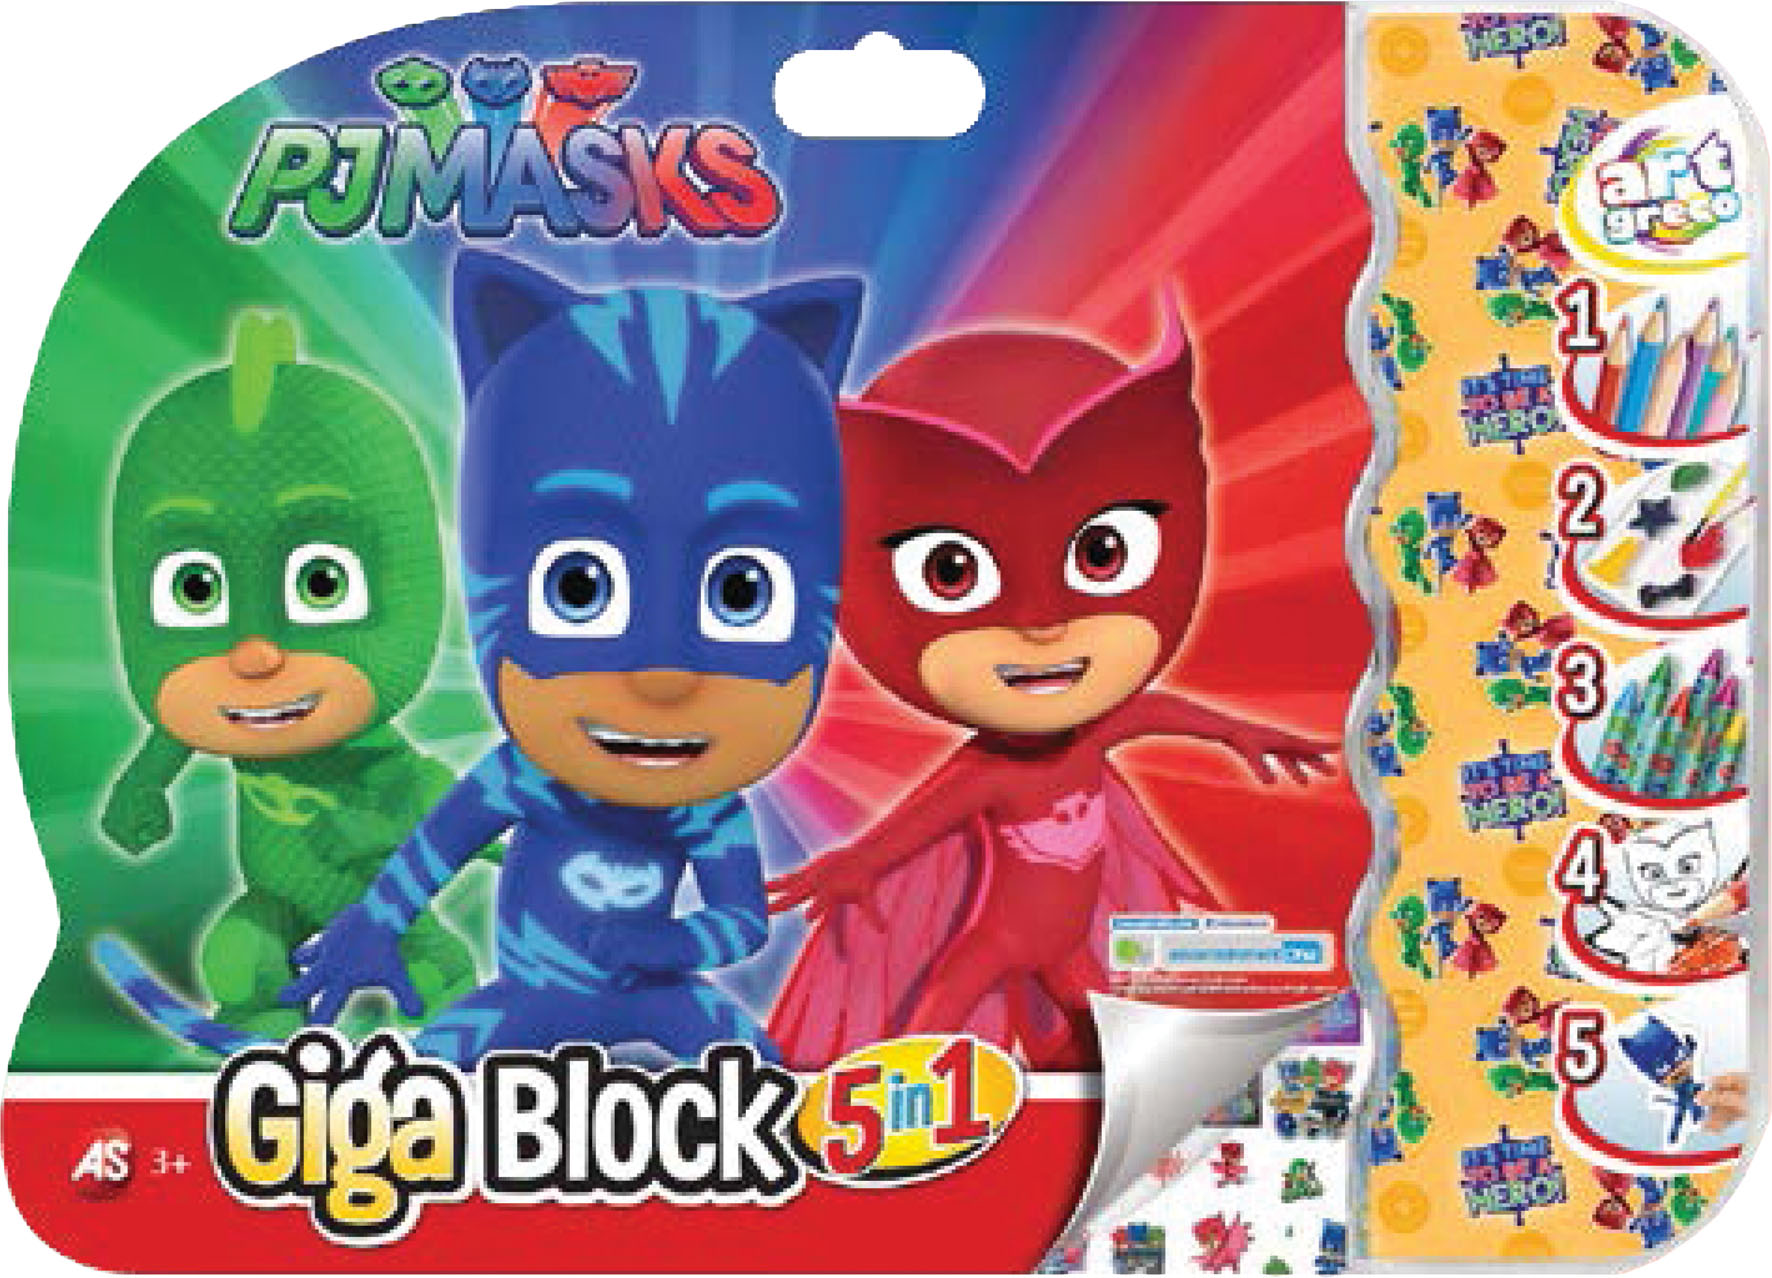 GIGA BLOCK PJ MASKS 5 IN 1